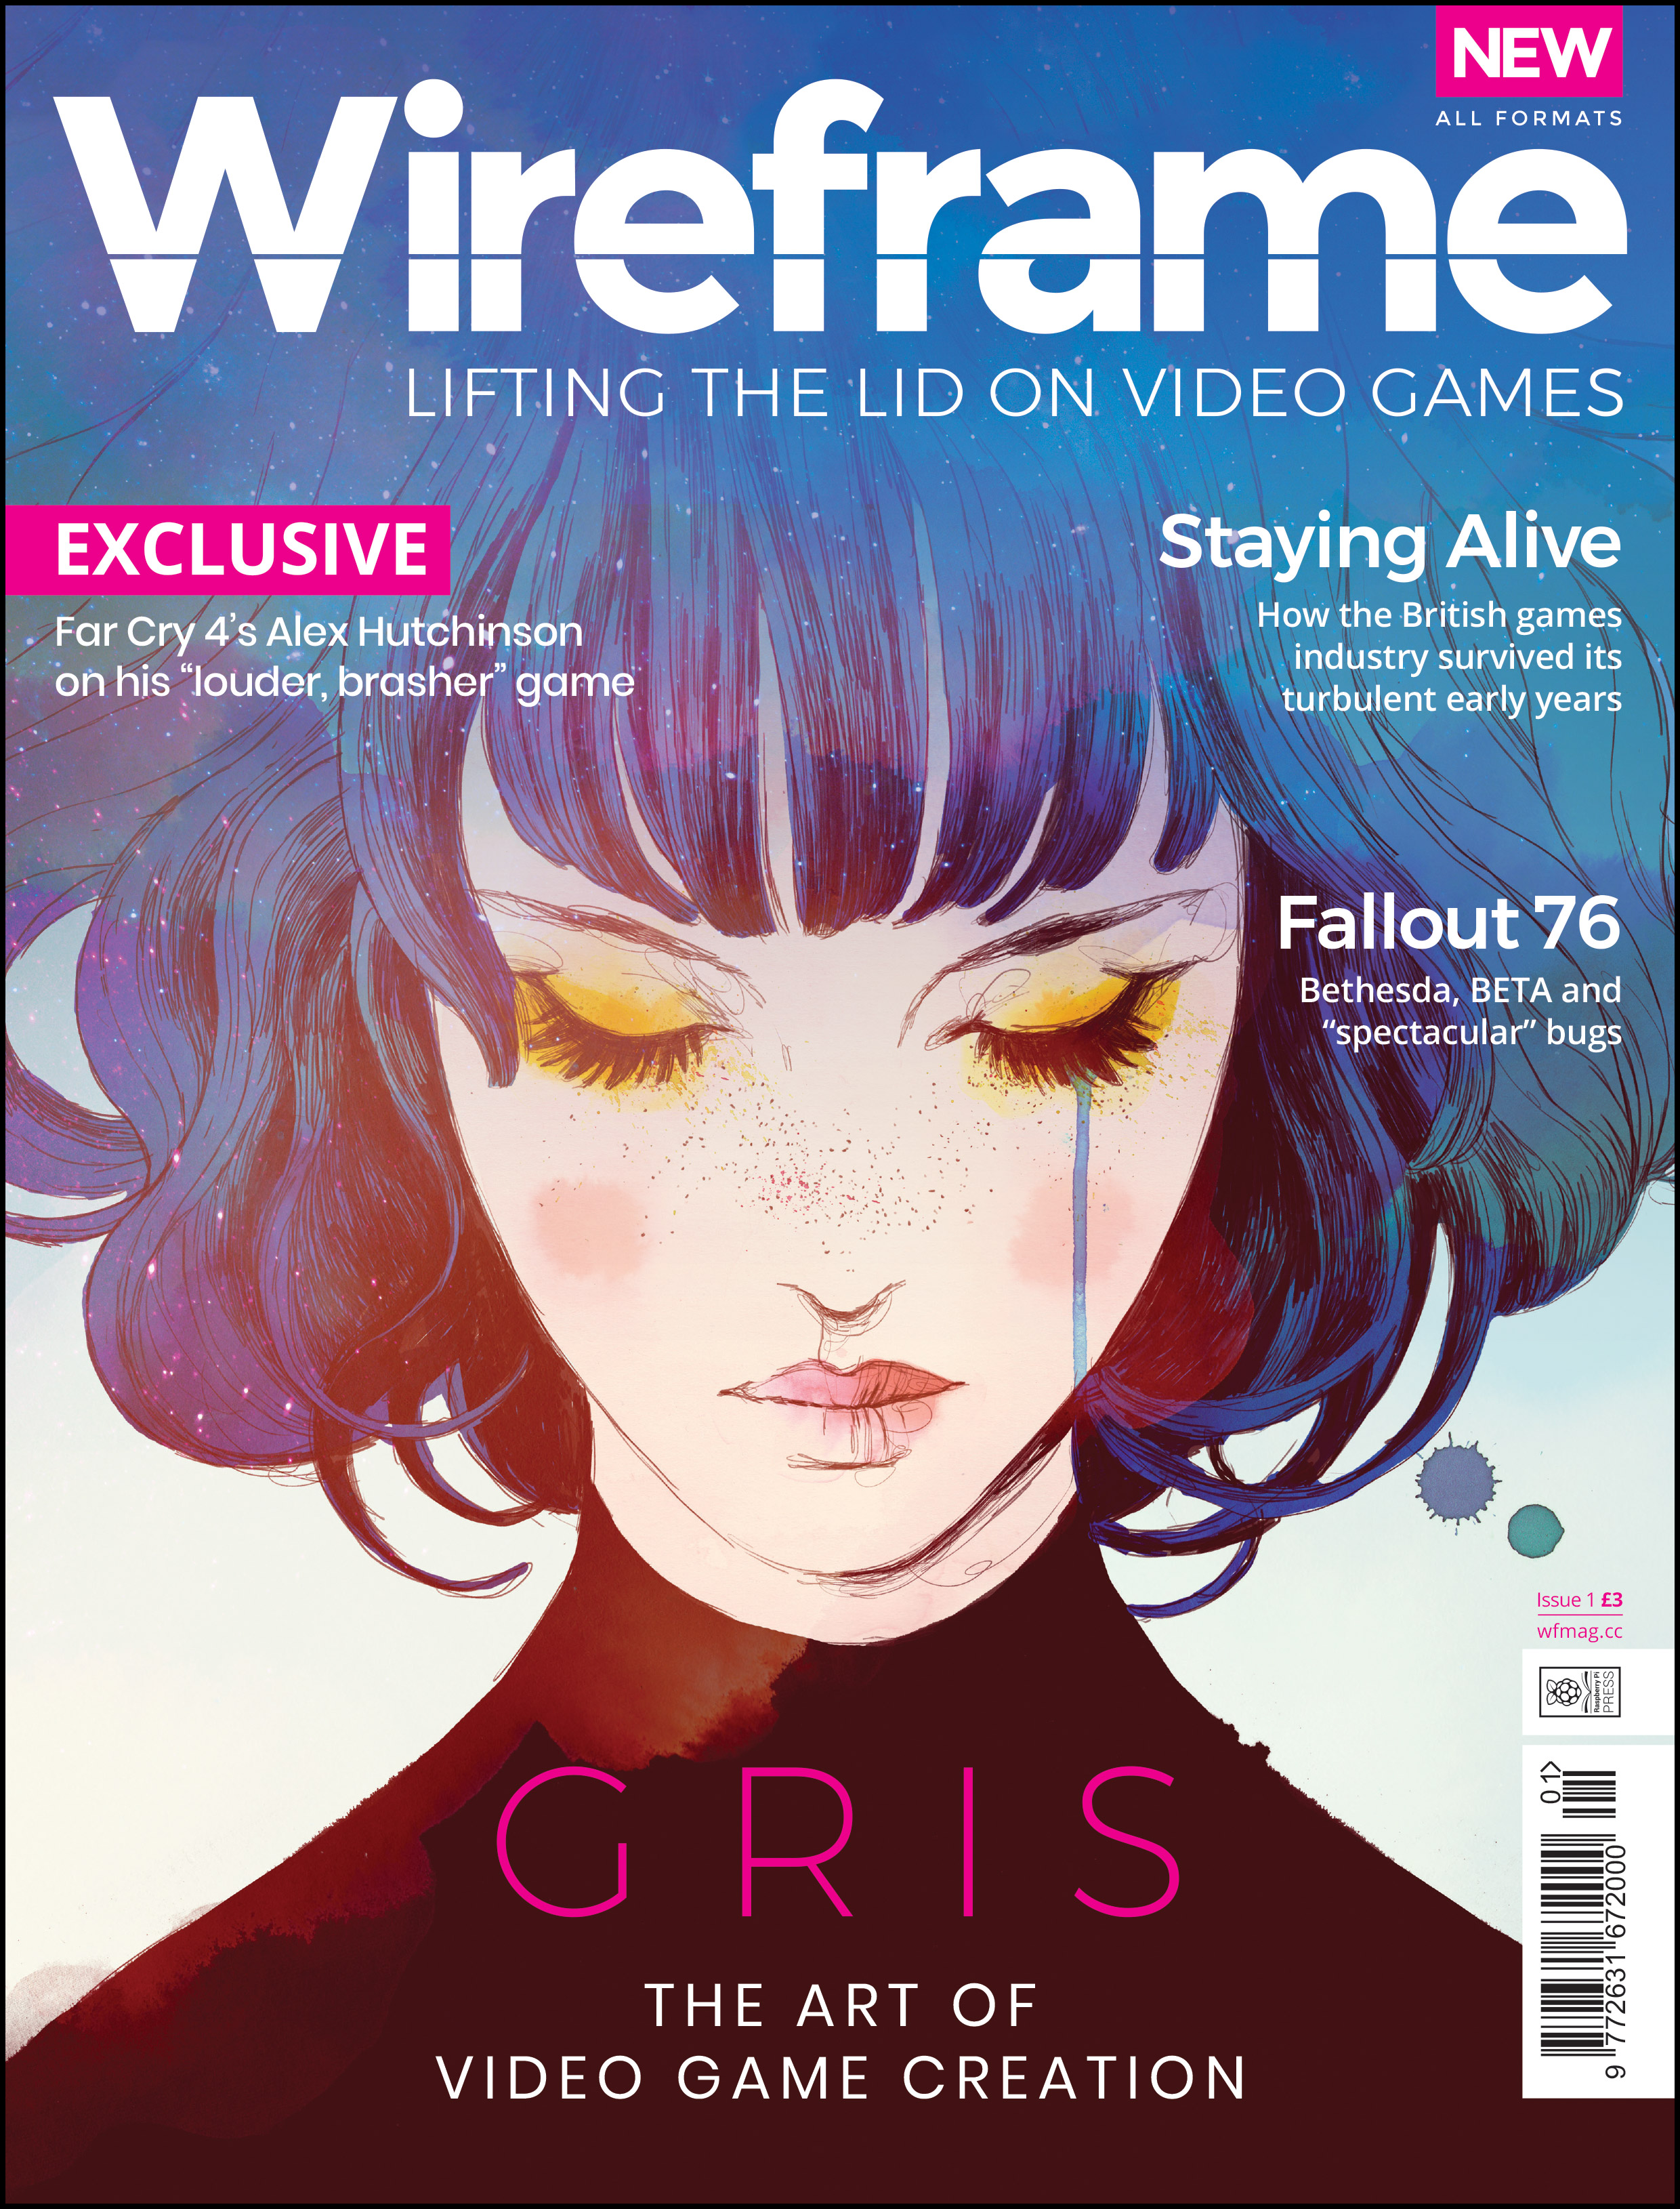 Wireframe issue 1 is out now!